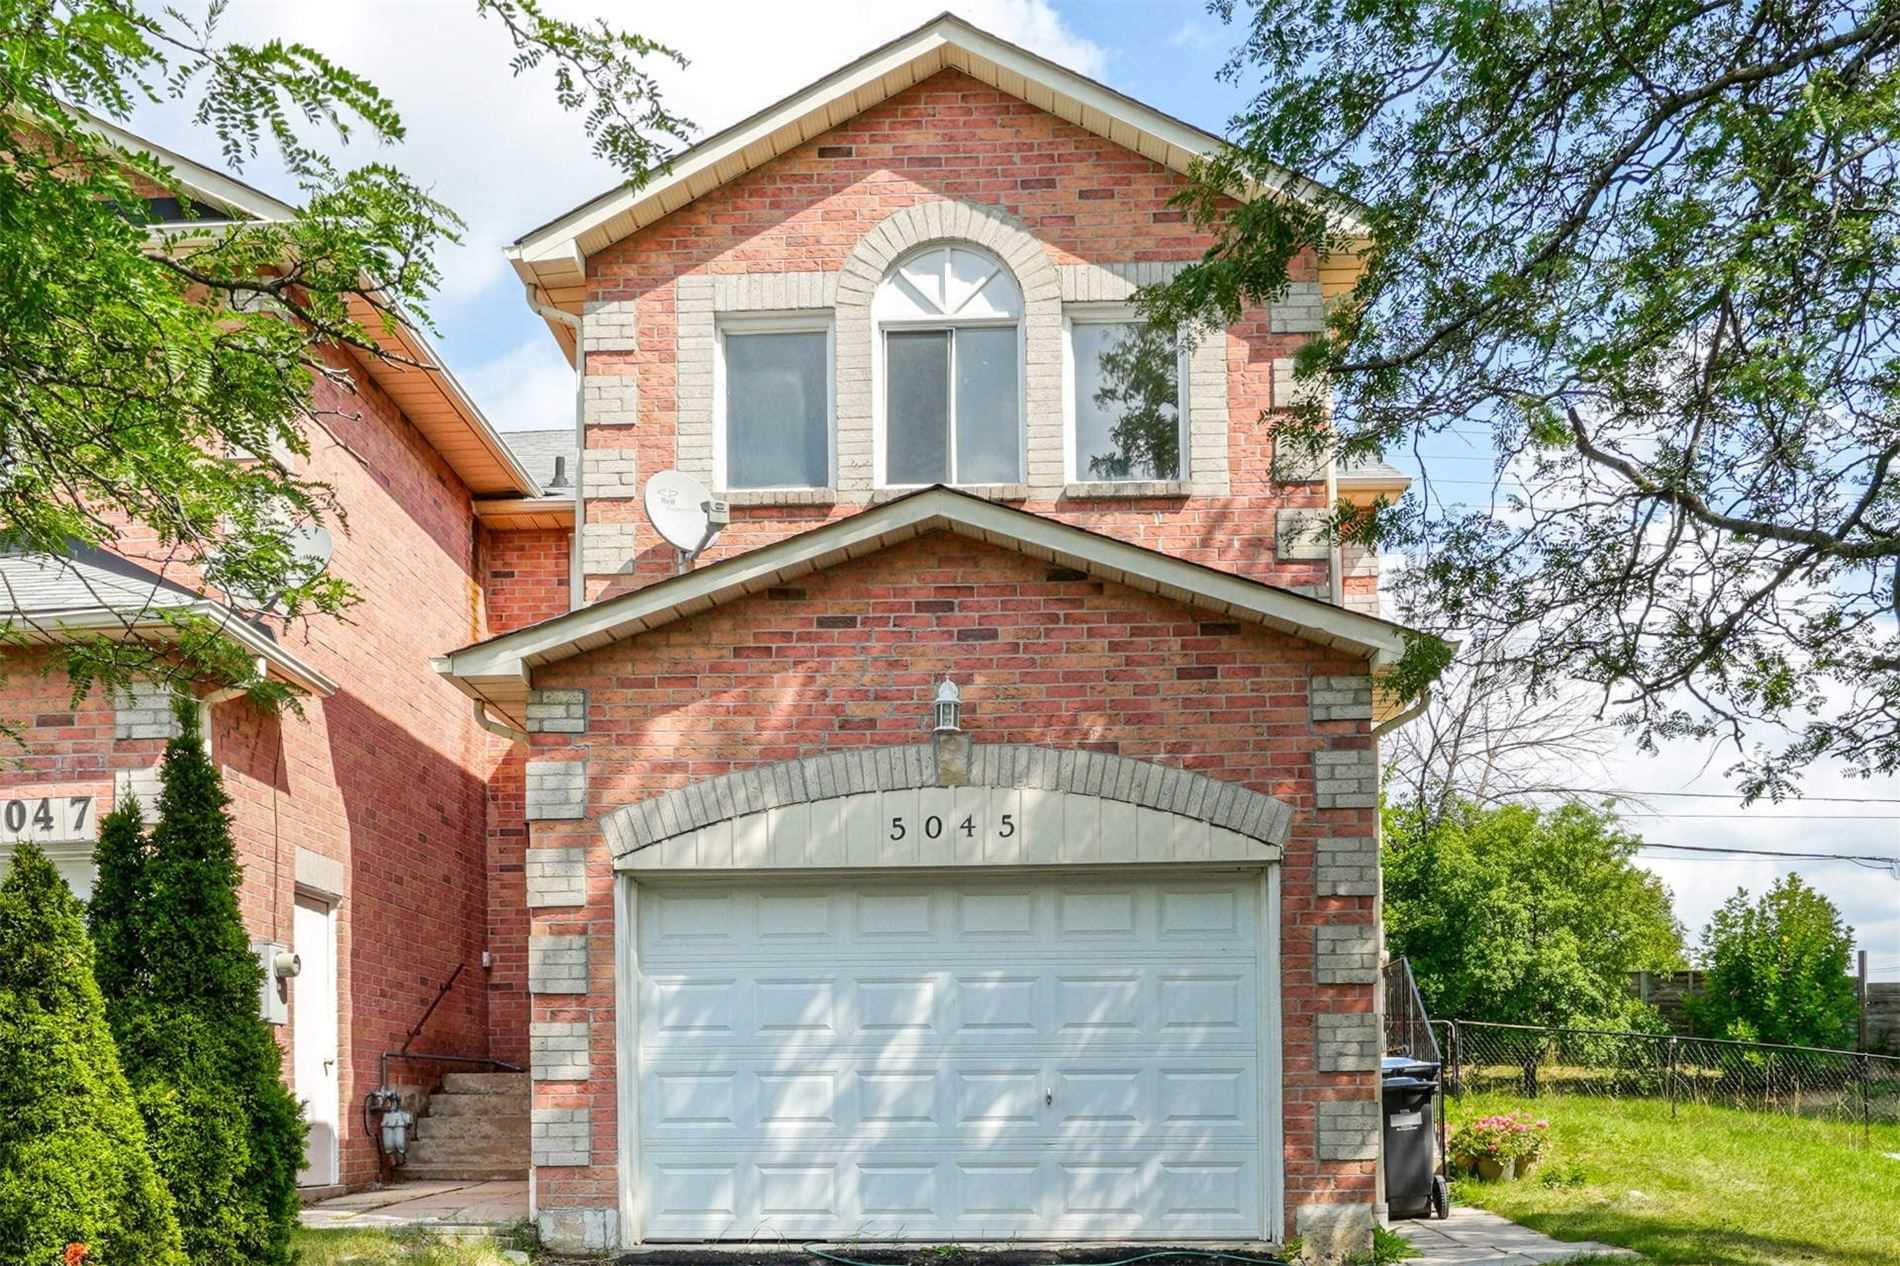 5045 Rundle Crt, Mississauga